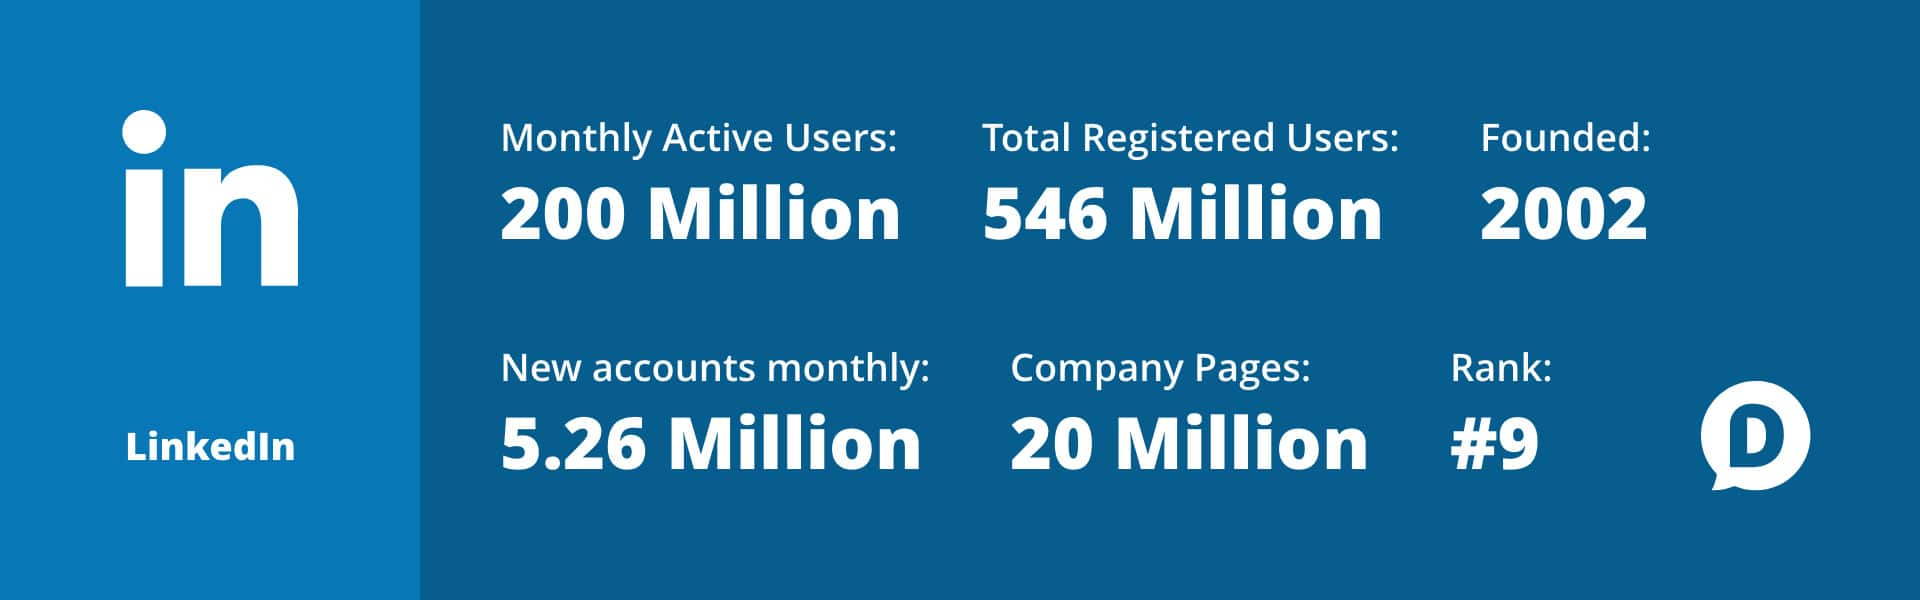 LinkedIn statistics for 2018